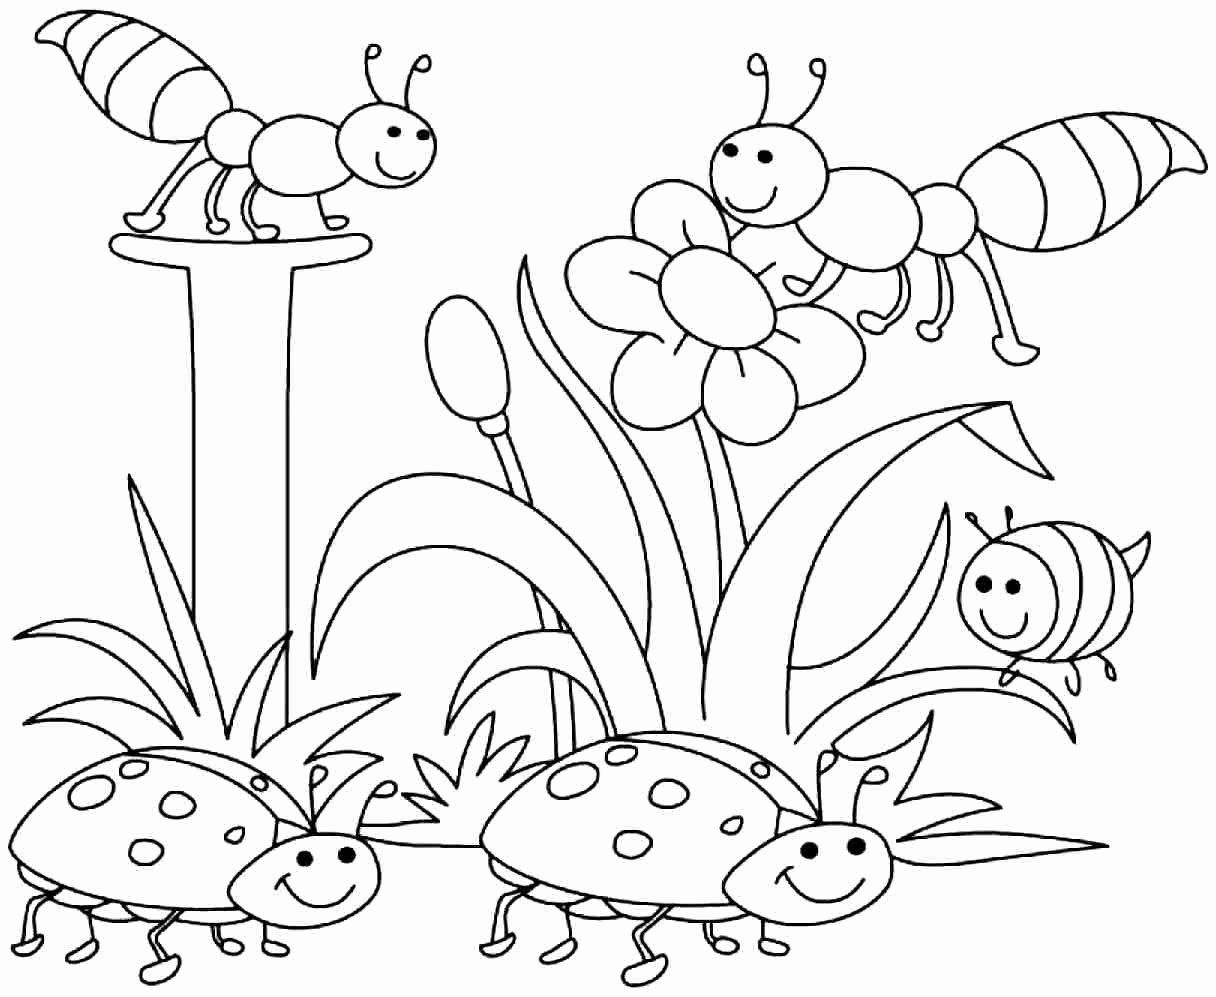 Cartoons Coloring Book Pdf Best Of 71 Most Brilliant Coloring Ideas Sheets For Kindergarten Summer Coloring Pages Easy Coloring Pages Spring Coloring Sheets